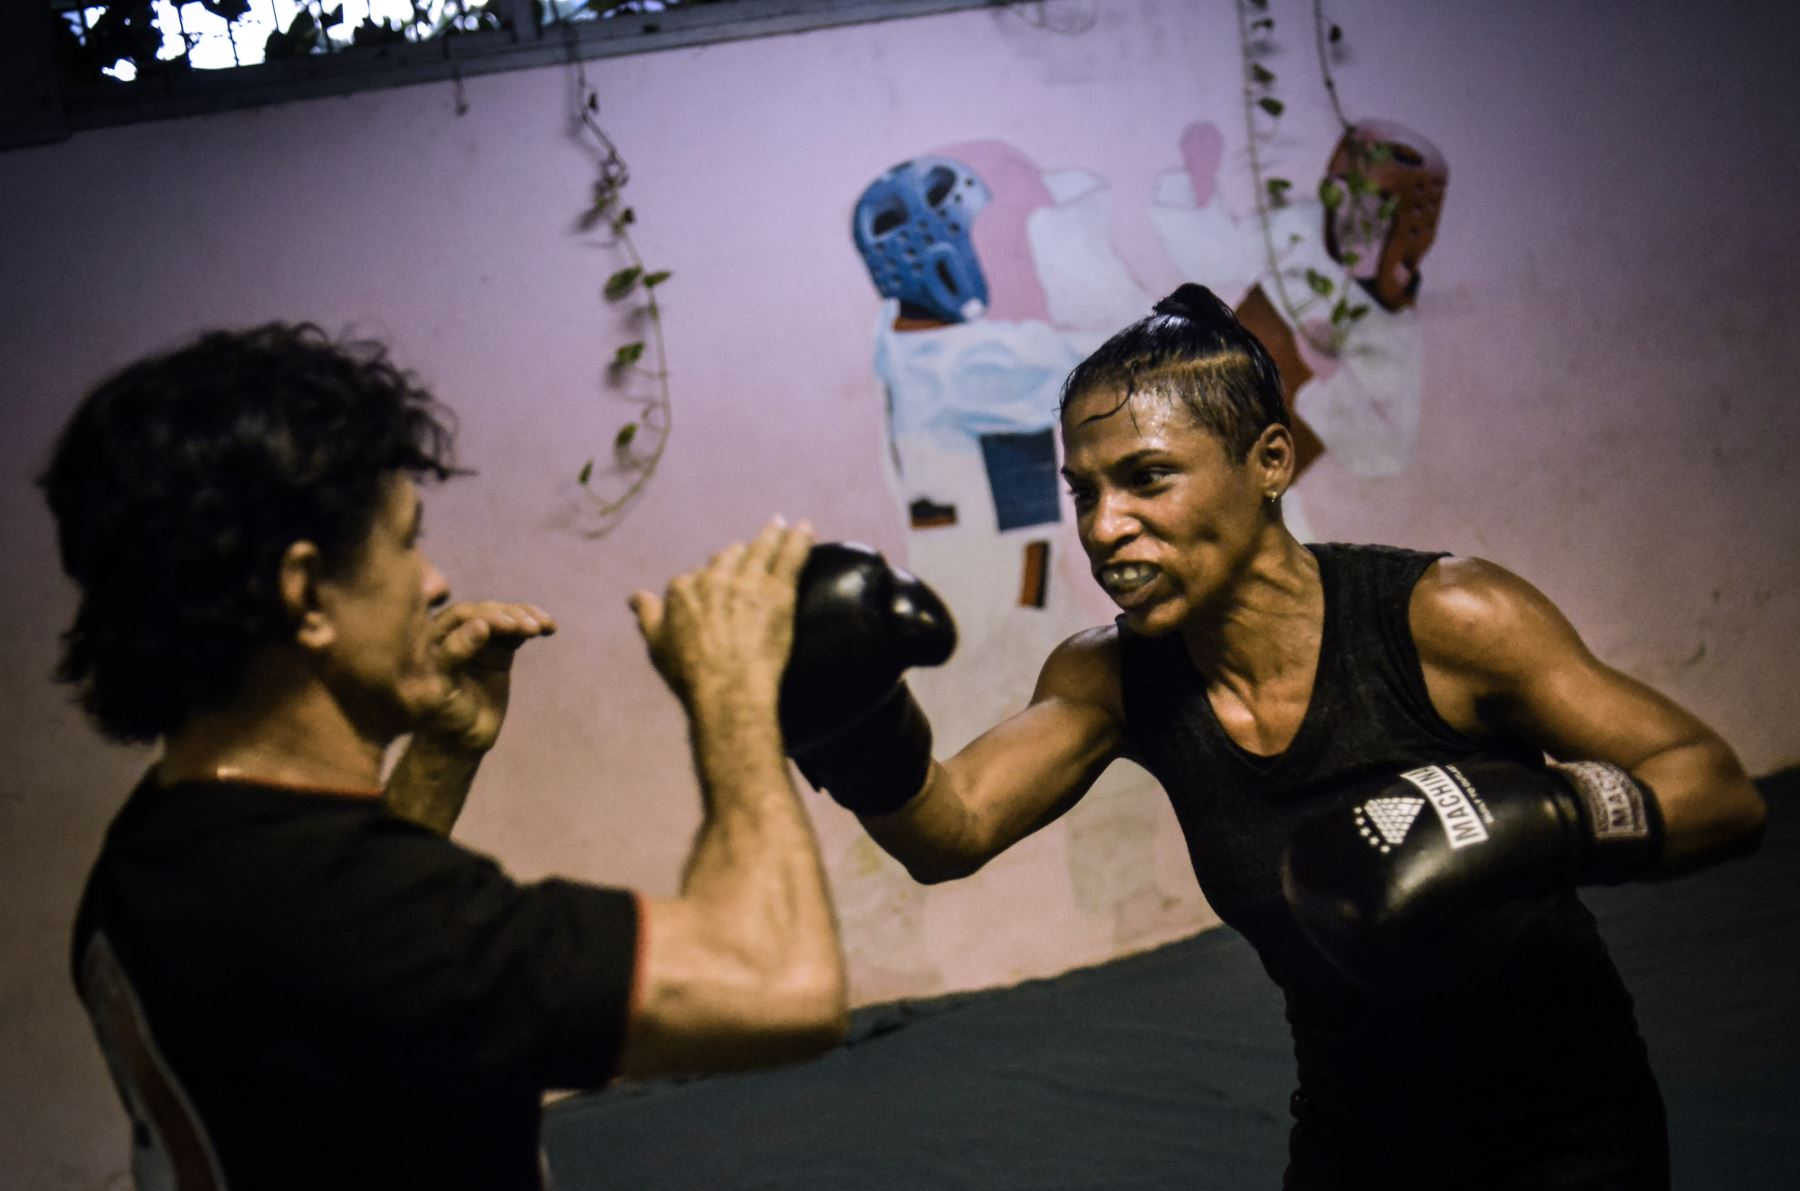 Meet Namibia Flores Rodriguez, the Only Known Female Boxer in Cuba